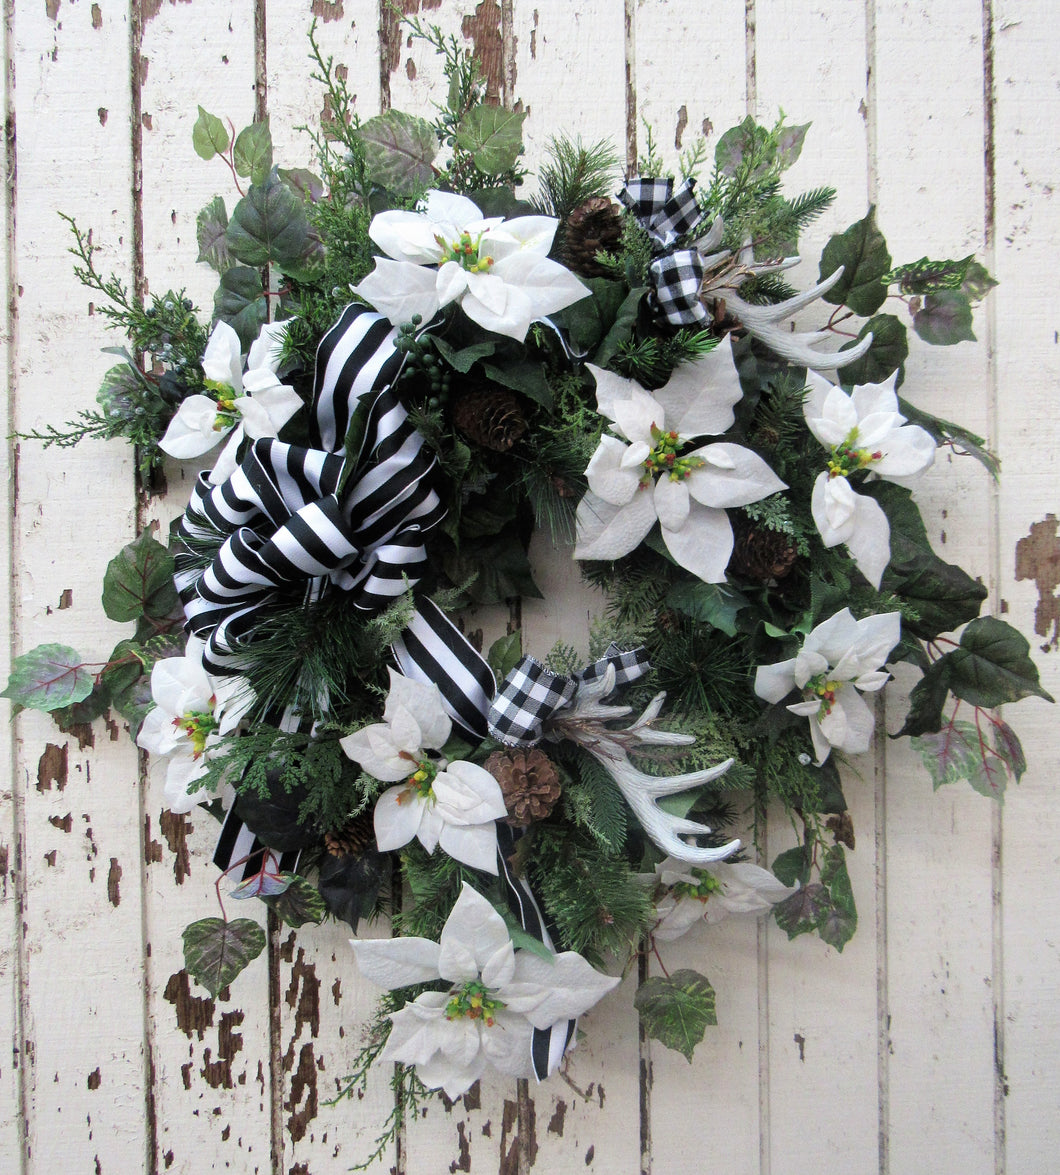 Holiday Wreath with Antlers/Hol67 - April's Garden Wreath